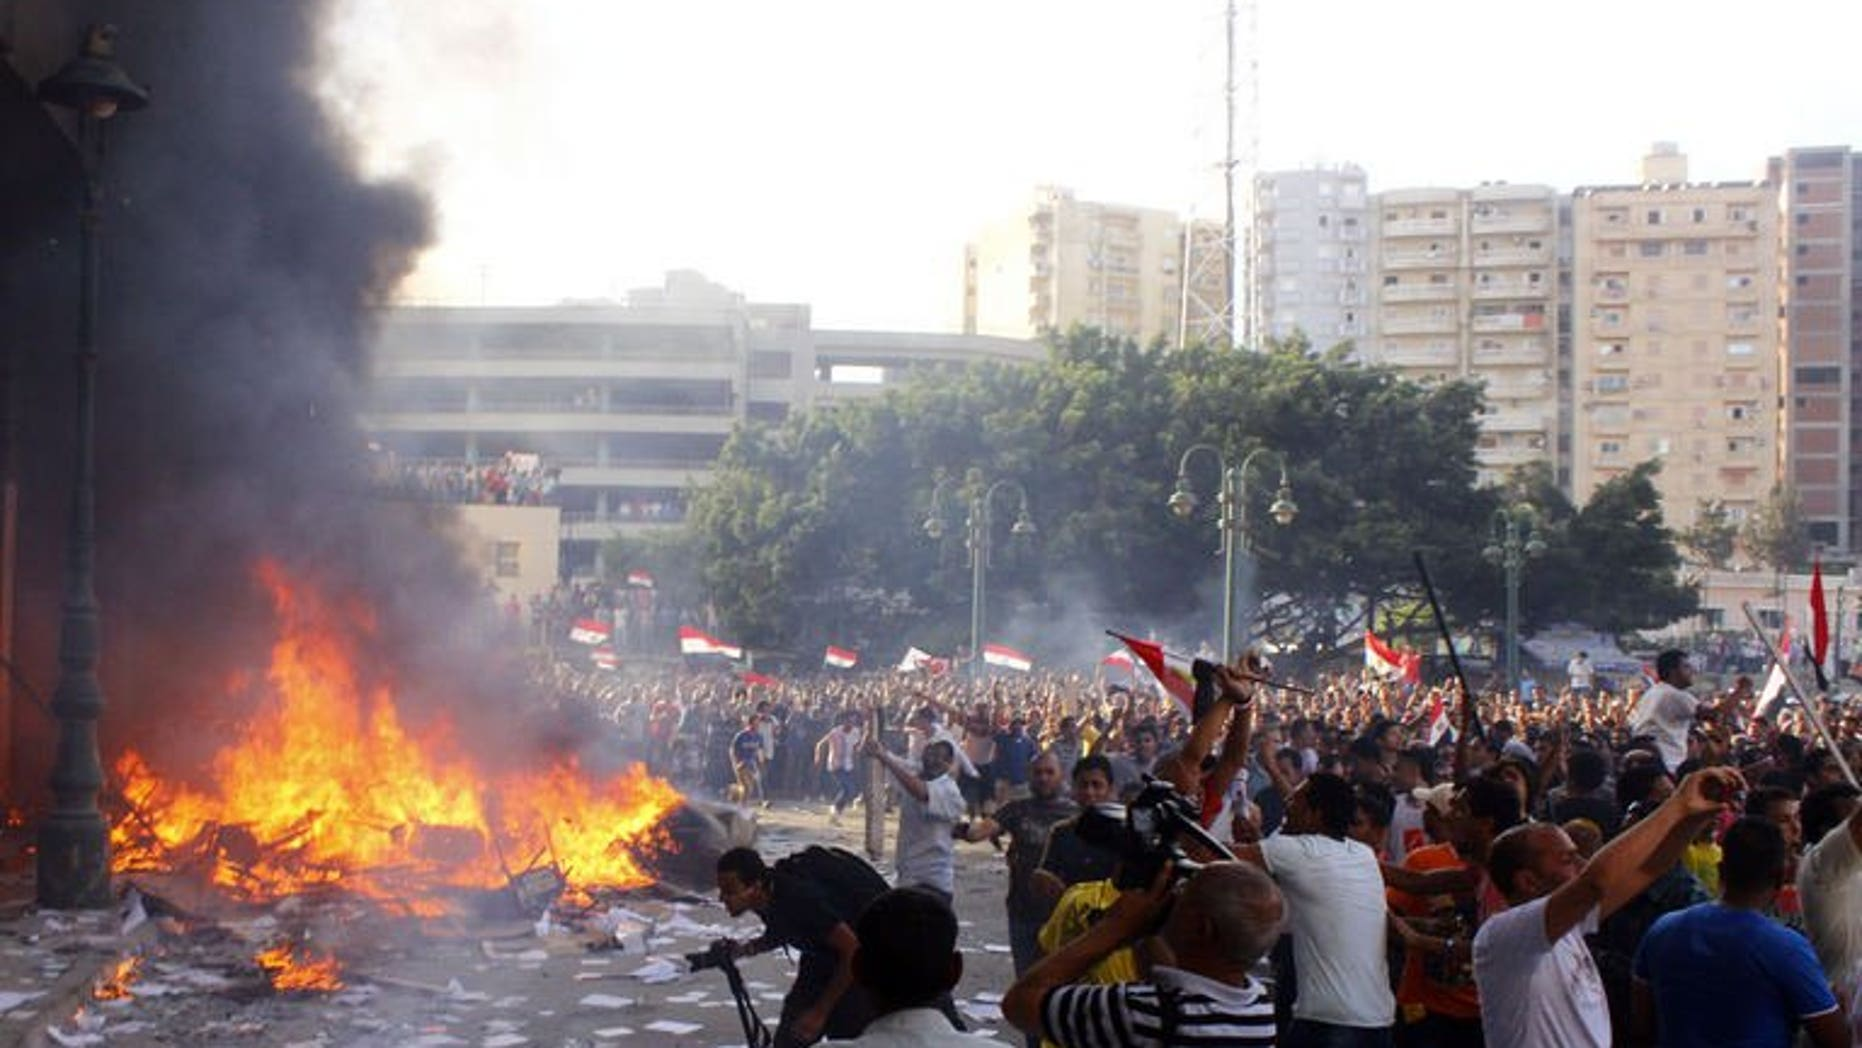 """Opponents of Egyptian President Mohamed Morsi burn the content of a Freedom and Justice Party office in the coastal city of Alexandria on June 28, 2013. US President Barack Obama has expressed concern about political clashes in Egypt and called on Morsi to be more """"constructive"""" in moving the country forward."""